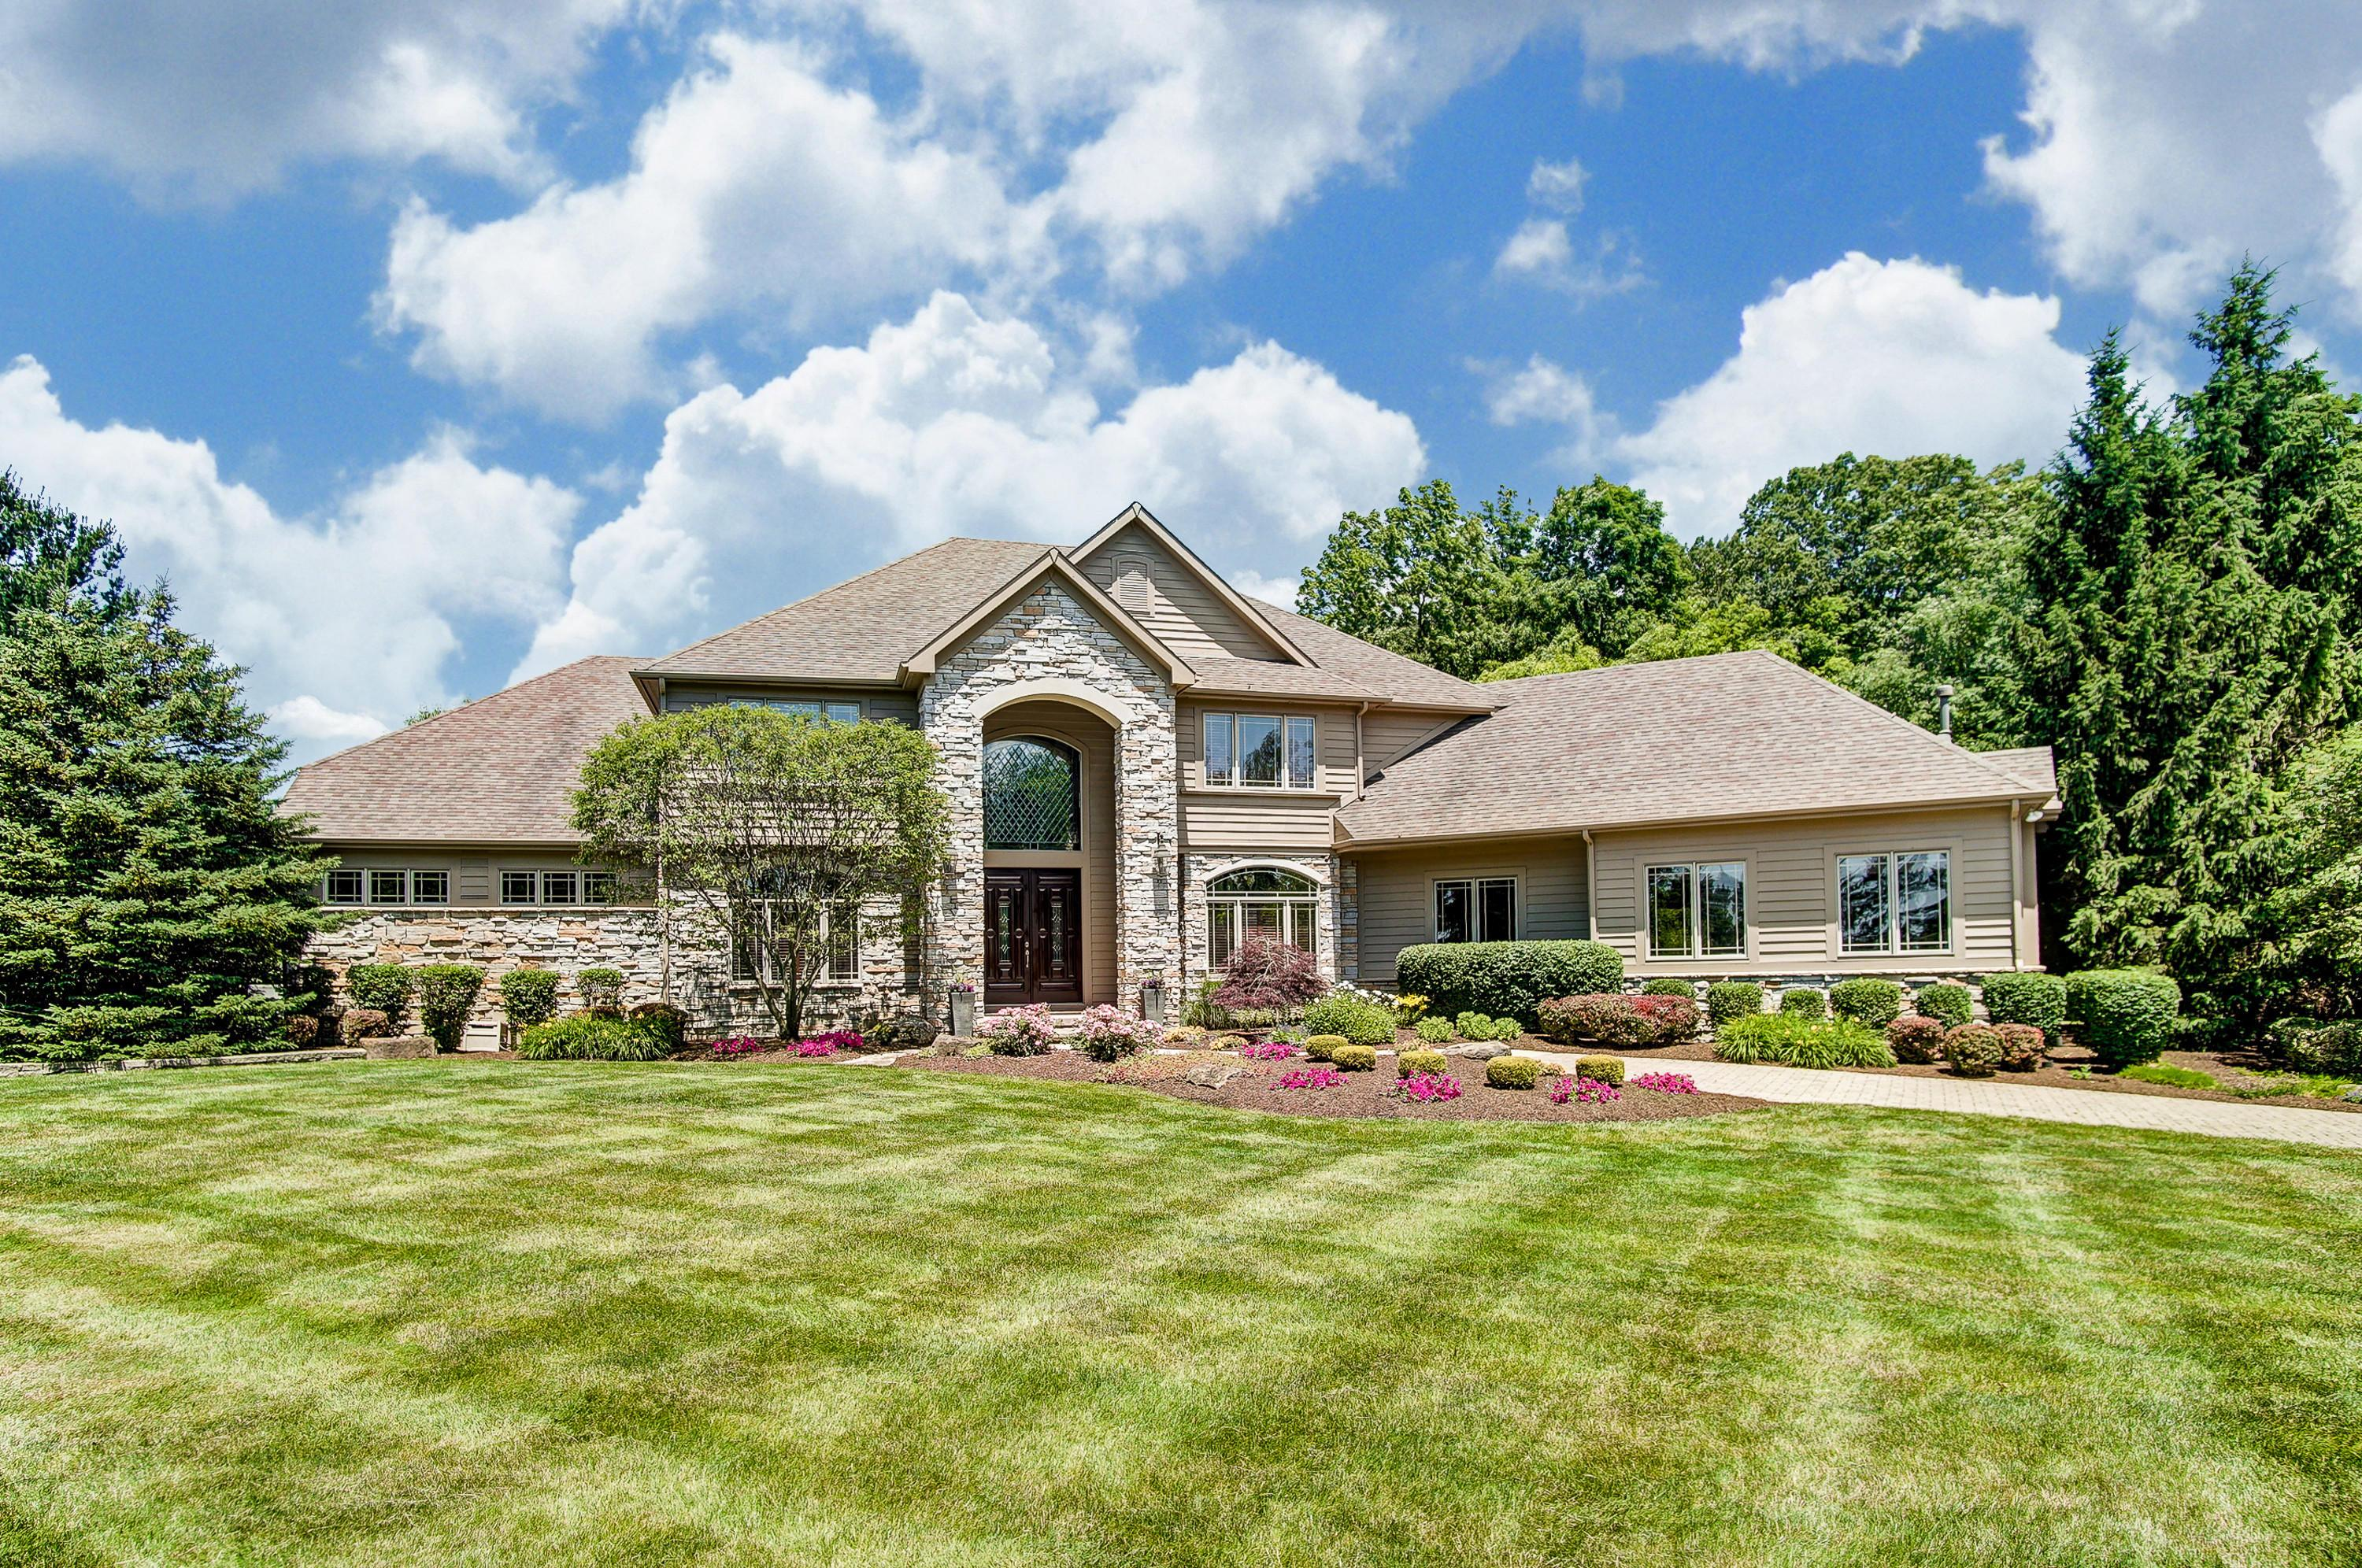 Photo of 7785 Plumb Road, Galena, OH 43021